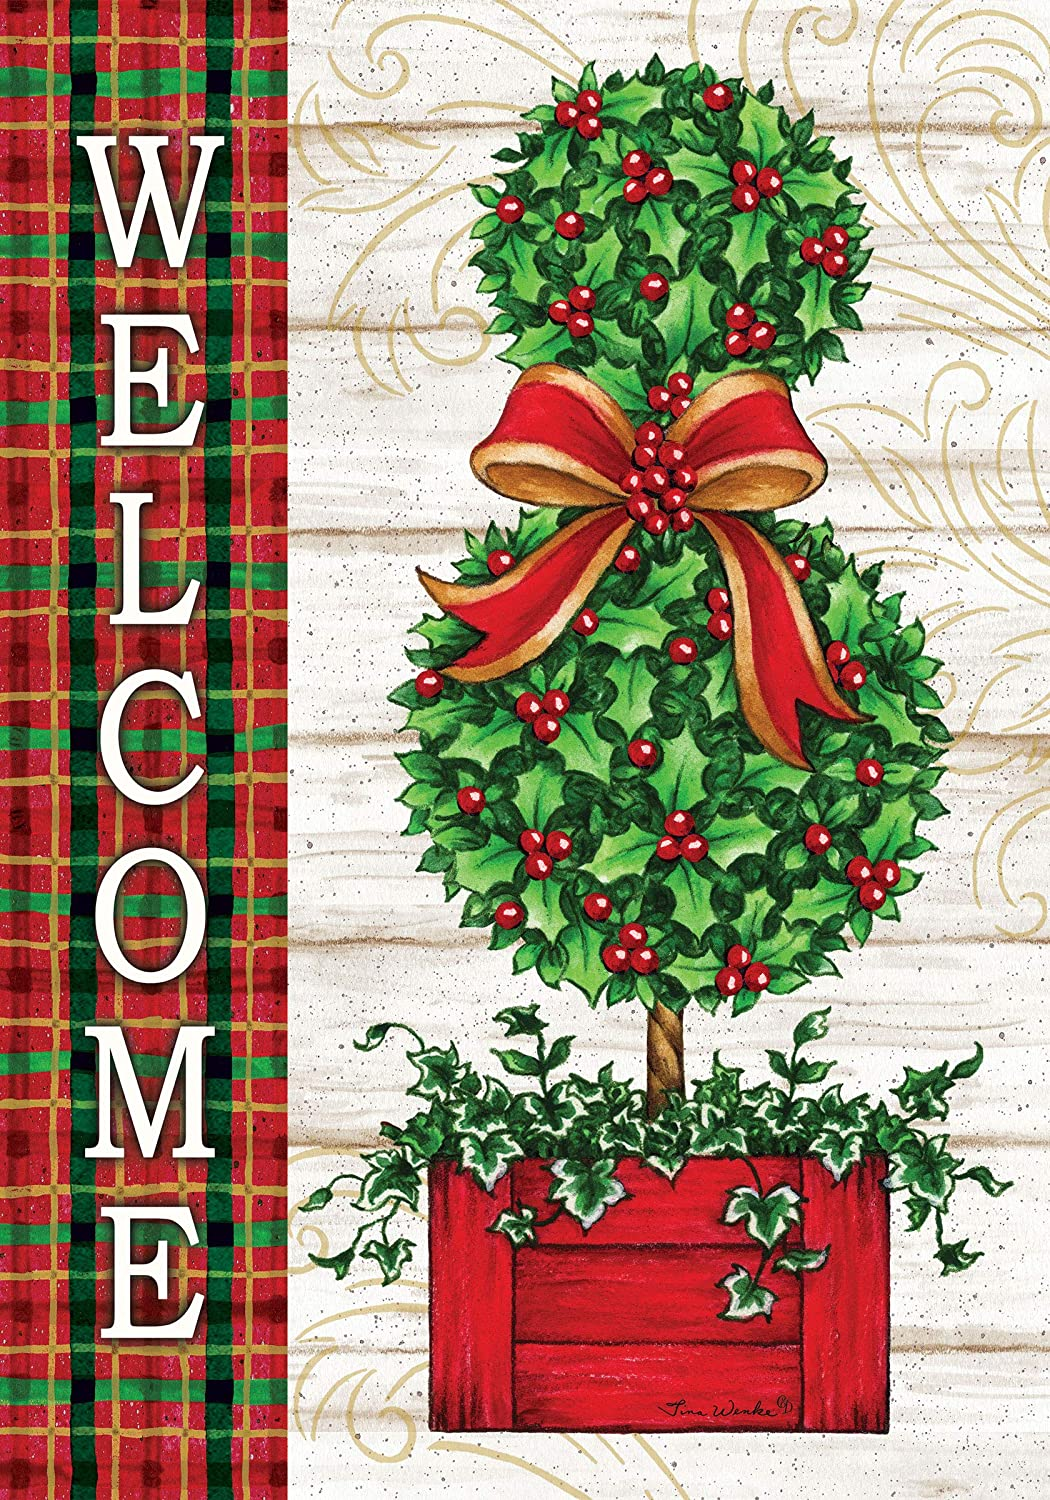 Custom Decor Christmas Topiary Garden Size Decorative Double Sided Licensed And Copyrighted Flag Printed In The Usa Inc 12 Inch X 18 Inch Approx Size Walmart Com Walmart Com